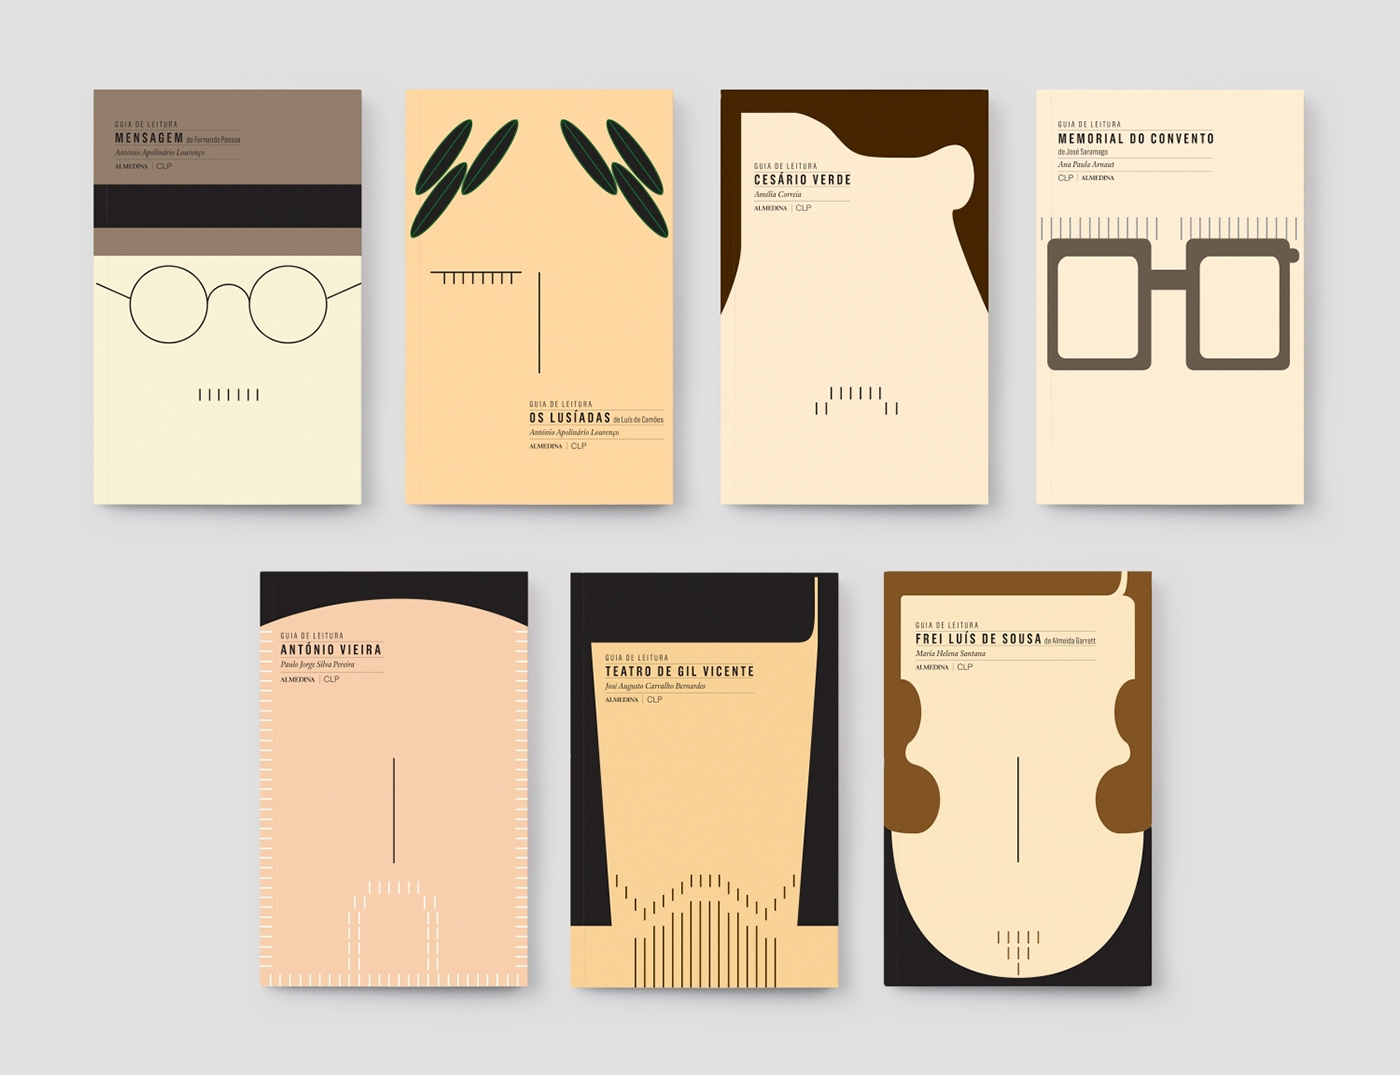 Book Cover Series Pdf ~ Ler melhor book cover series on behance